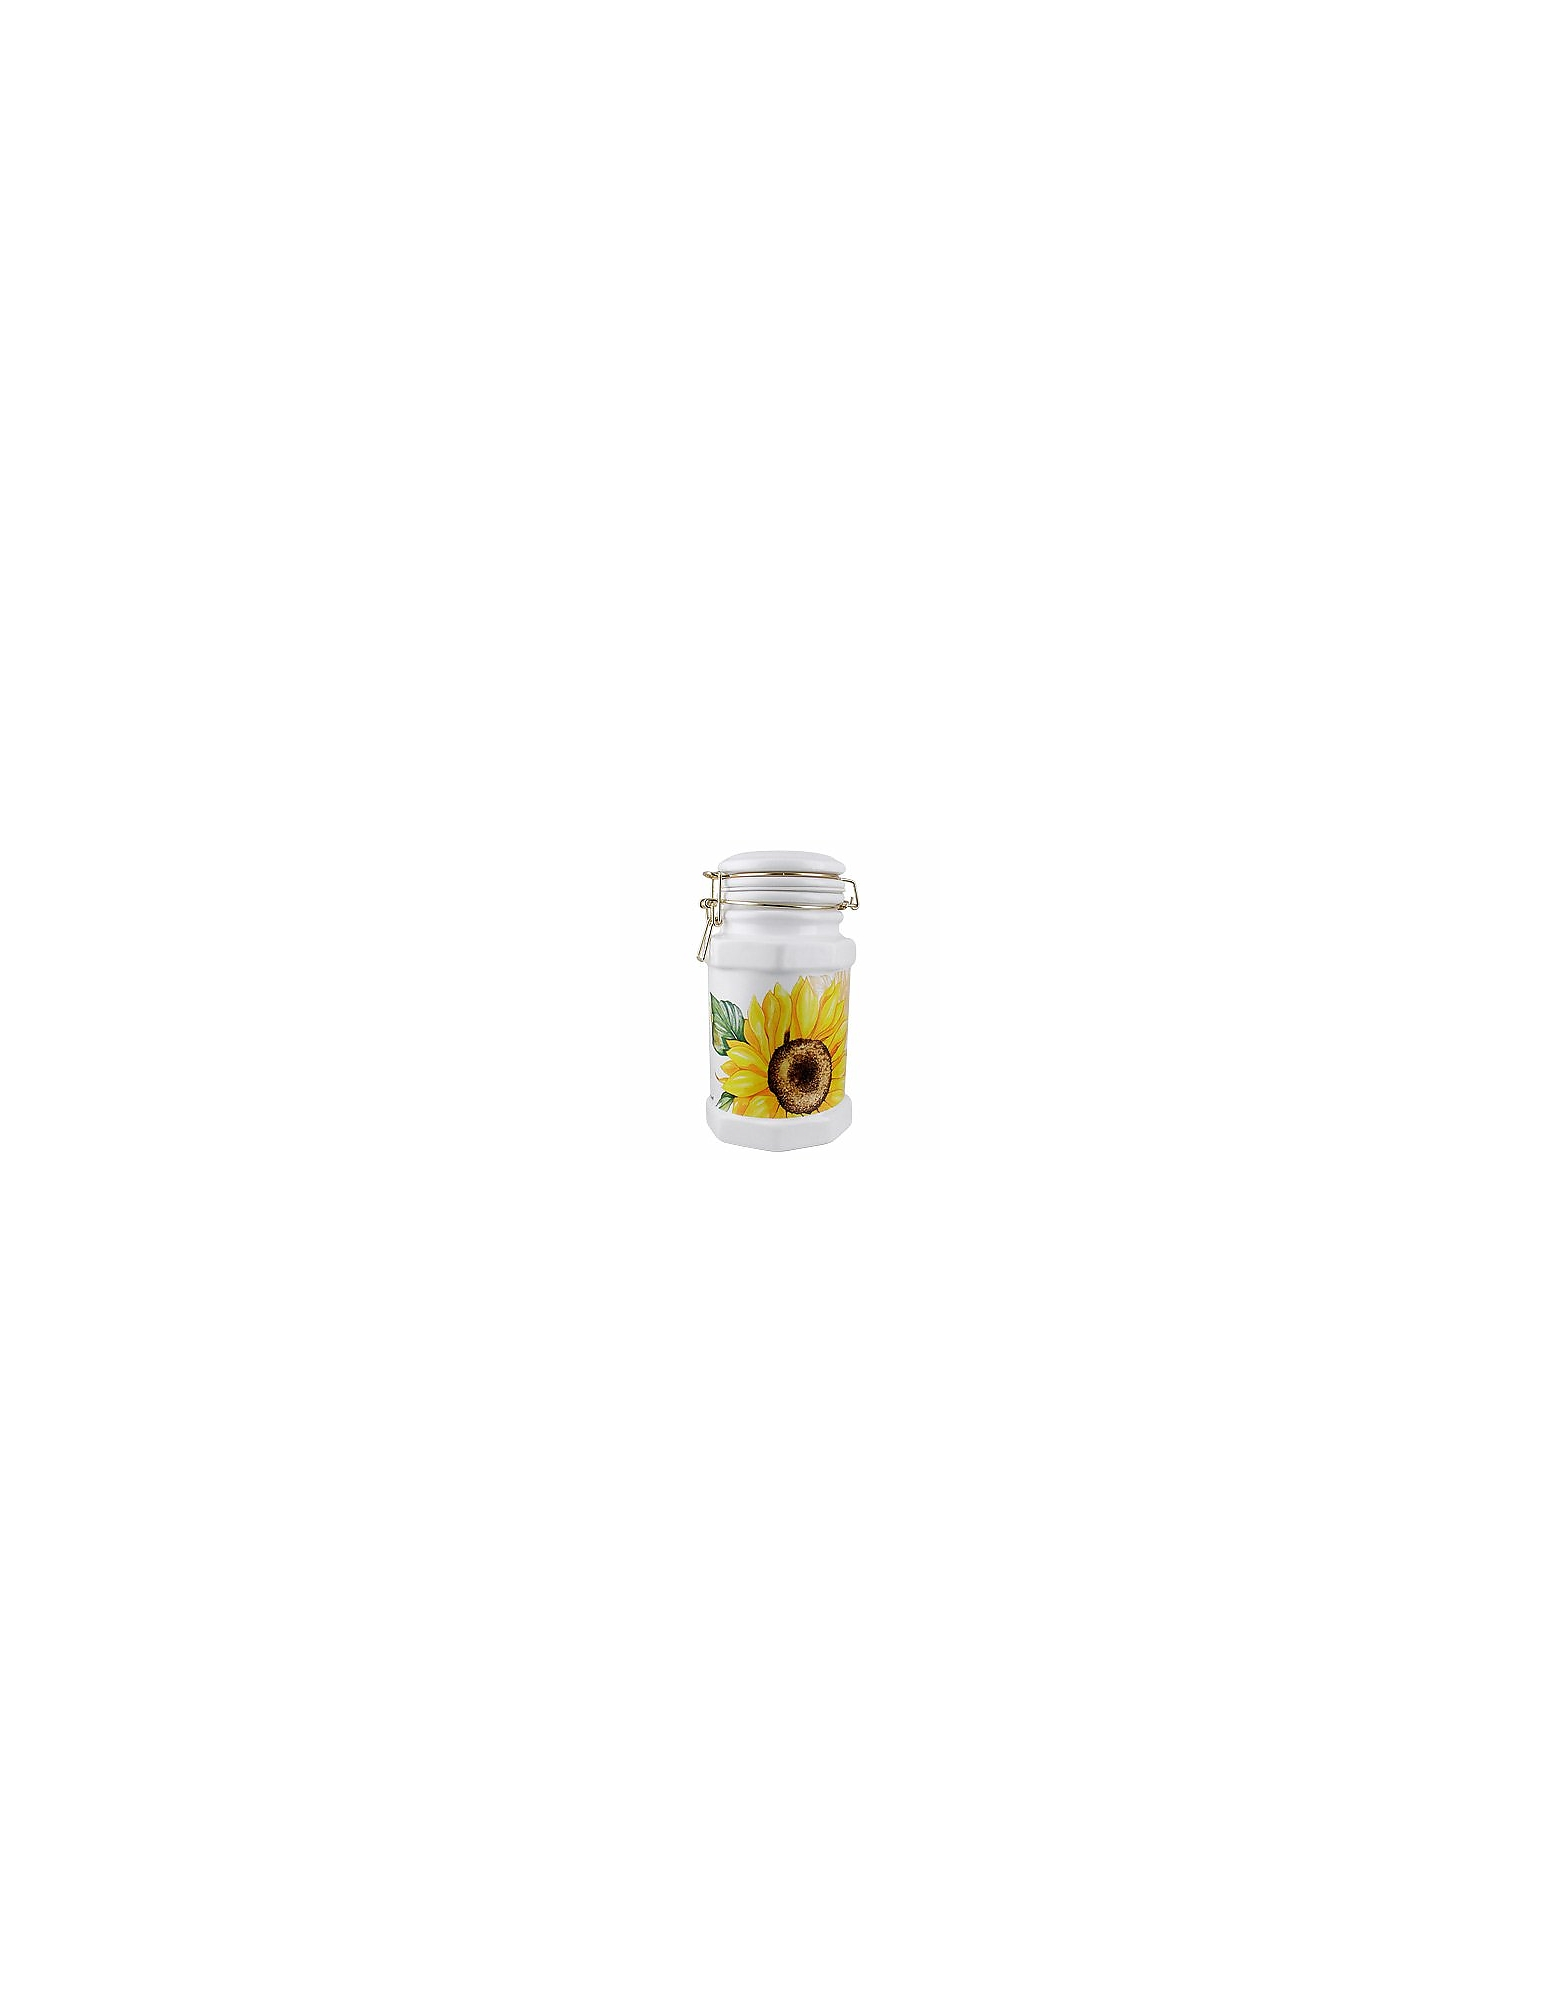 Image of Spigarelli Designer Kitchen & Dining, Sunflower Airtight Seal Ceramic Canister